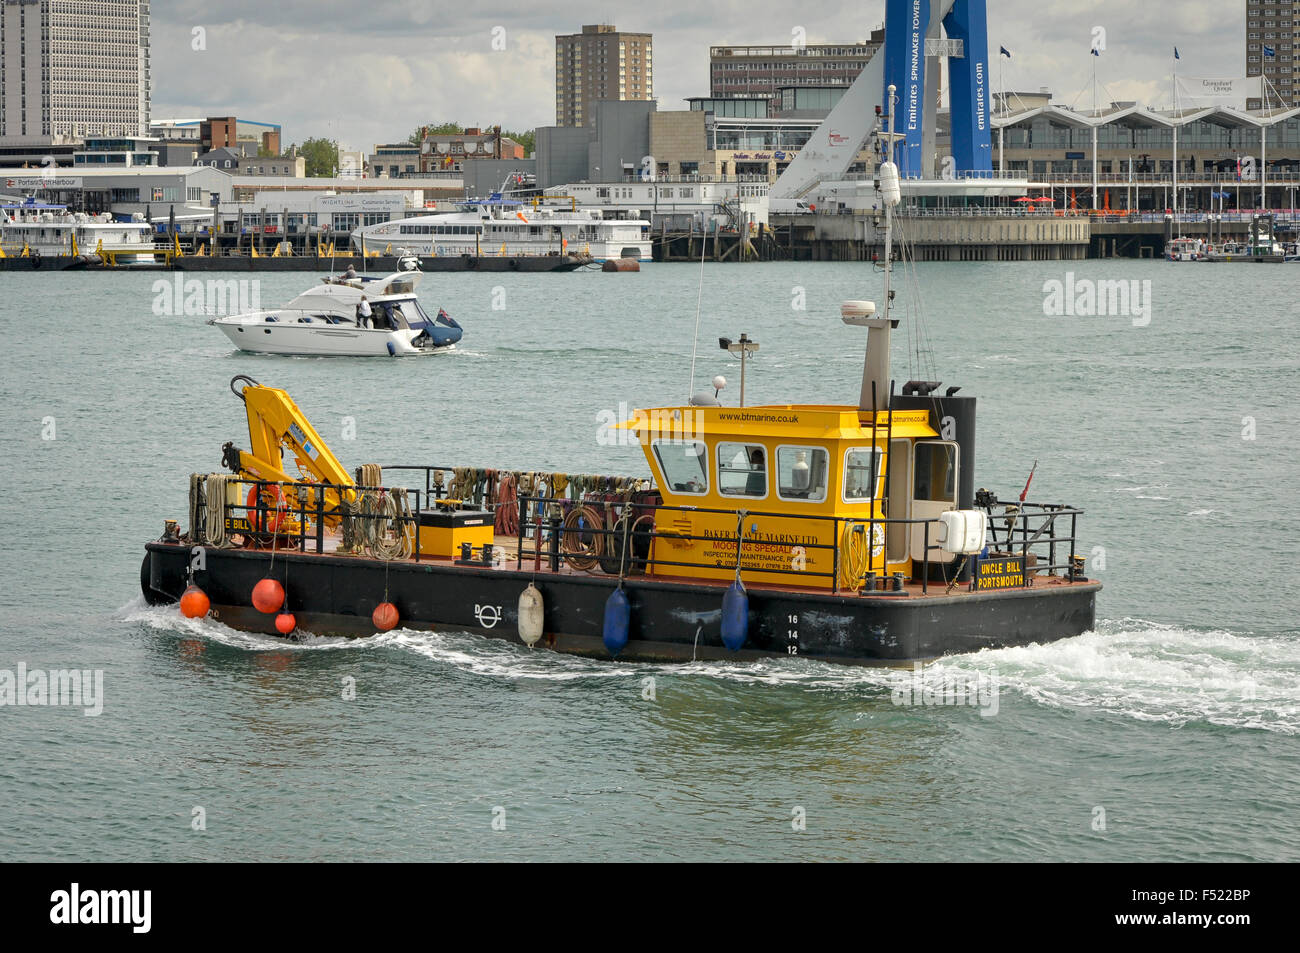 'Old Bill' vessel for checking and laying moorings in Portsmouth Harbour. - Stock Image